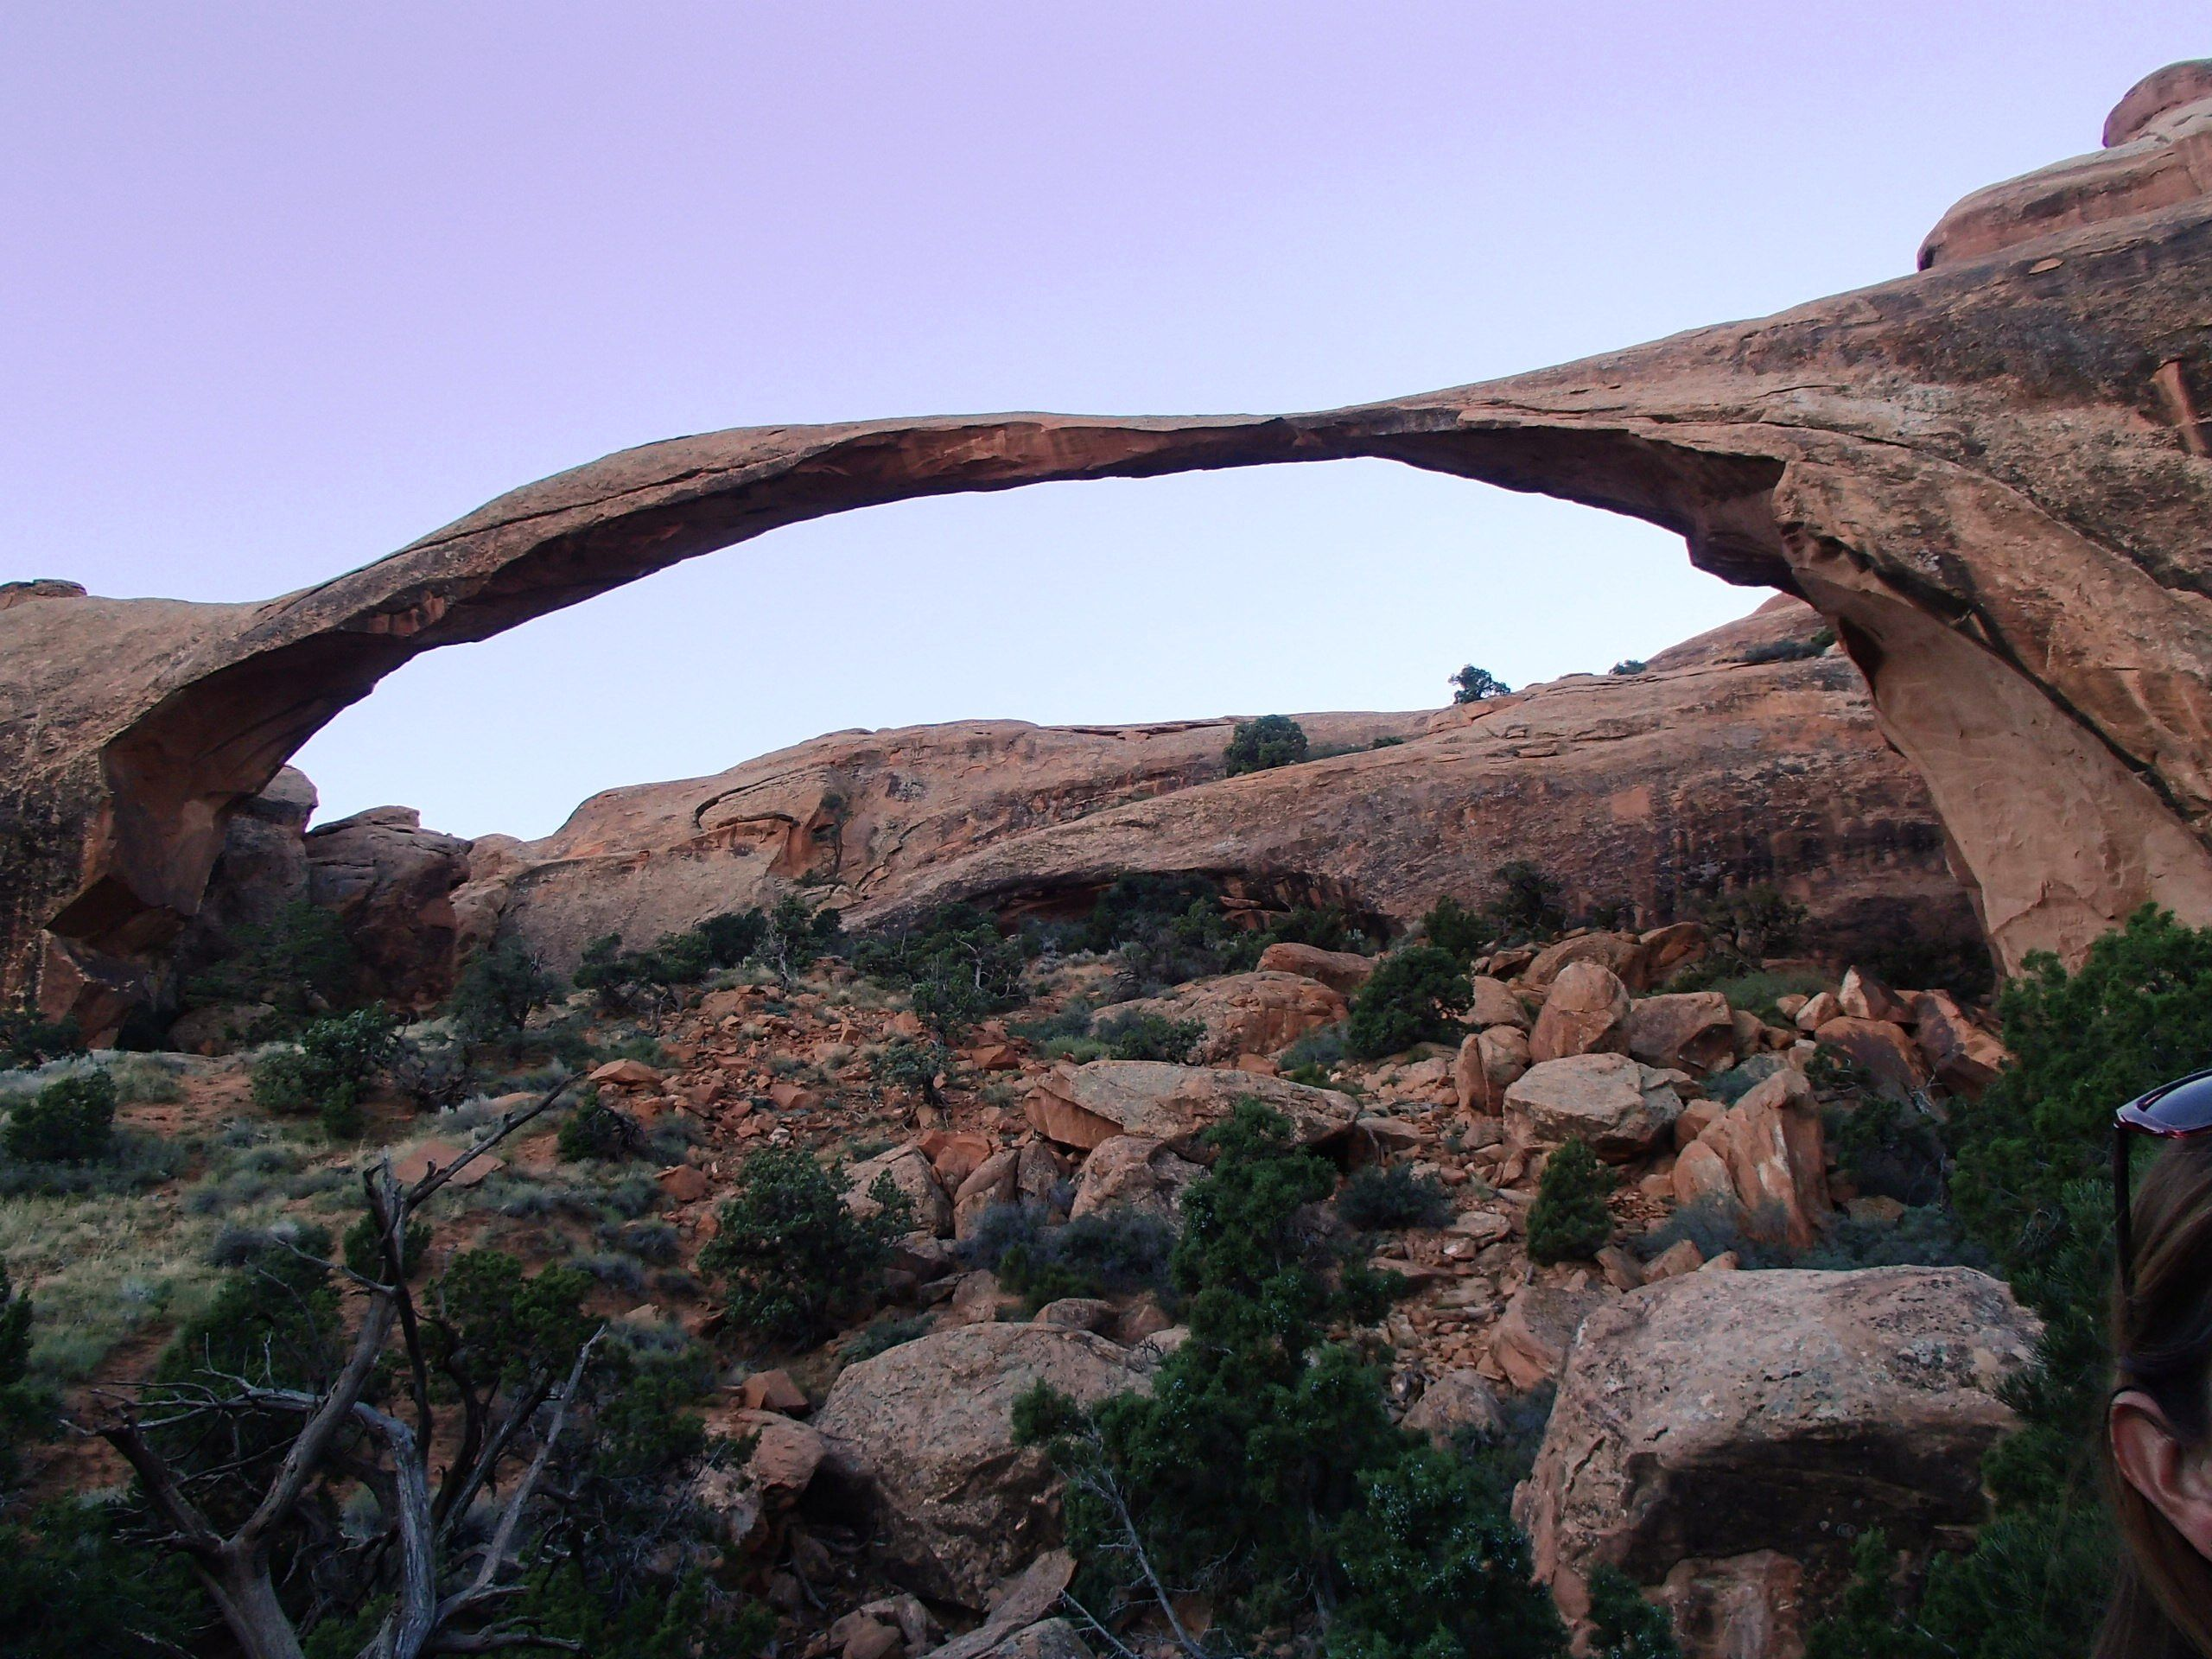 The evening sky is tinted lavender in this image of Landscape Arch